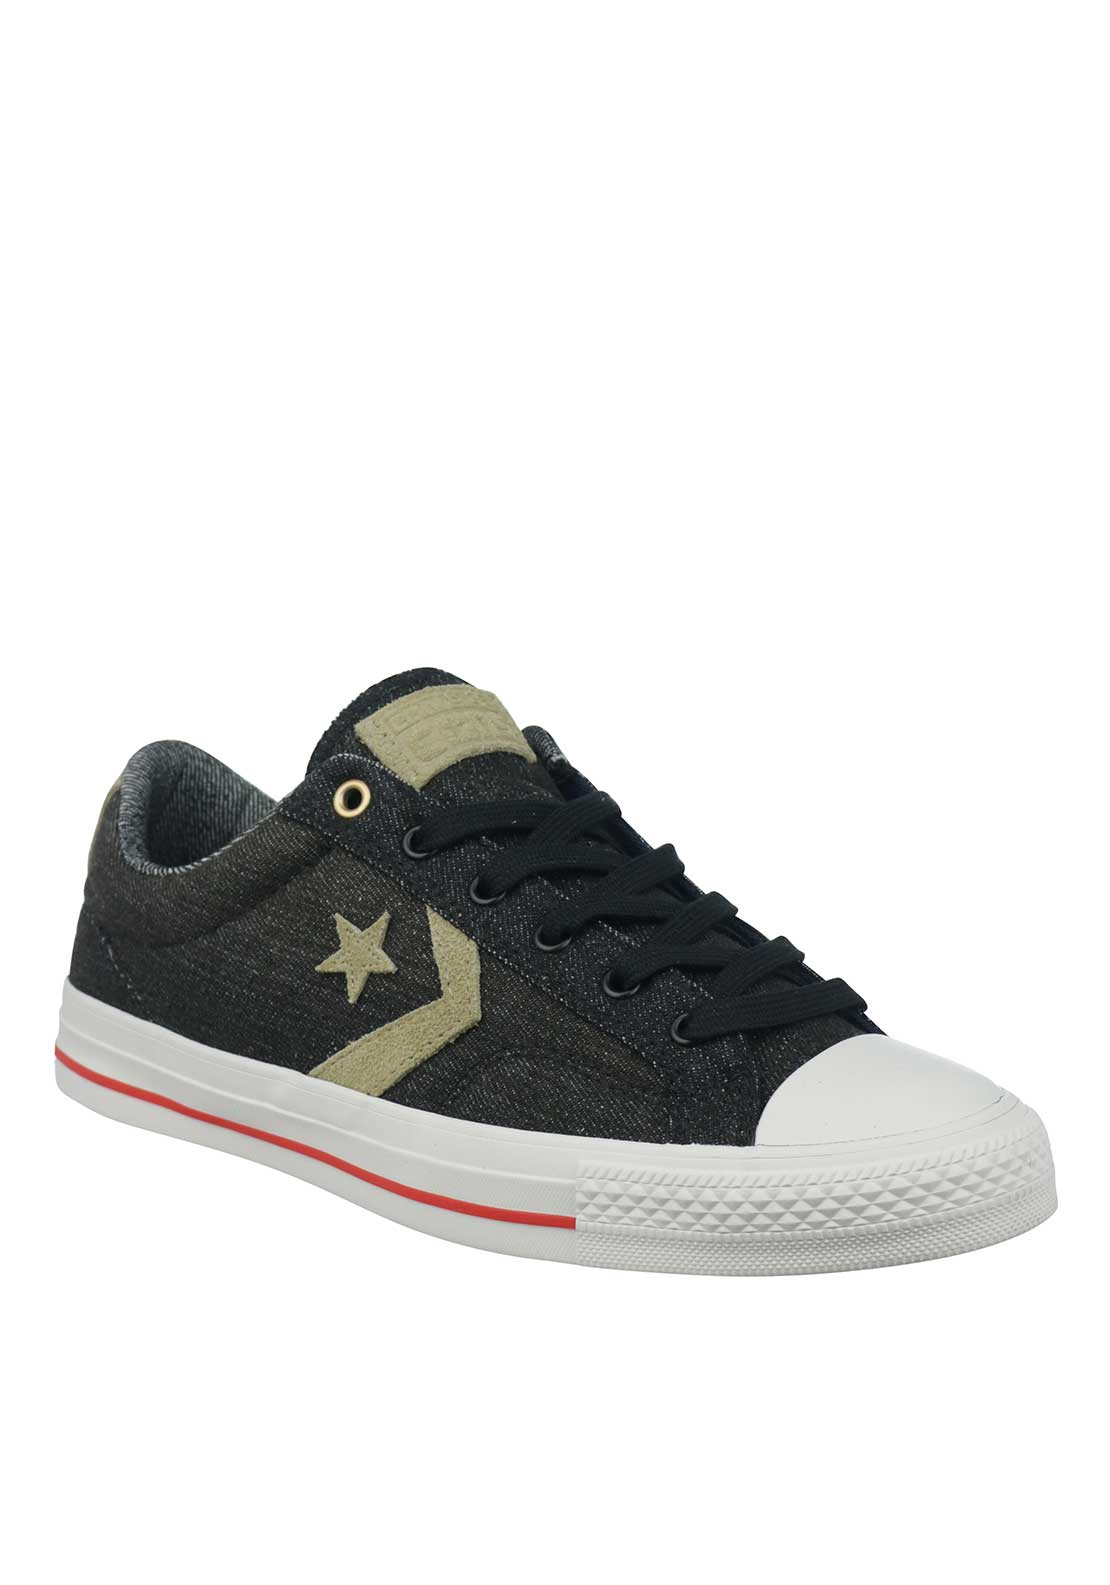 Converse Cons Mens Canvas Trainers, Black